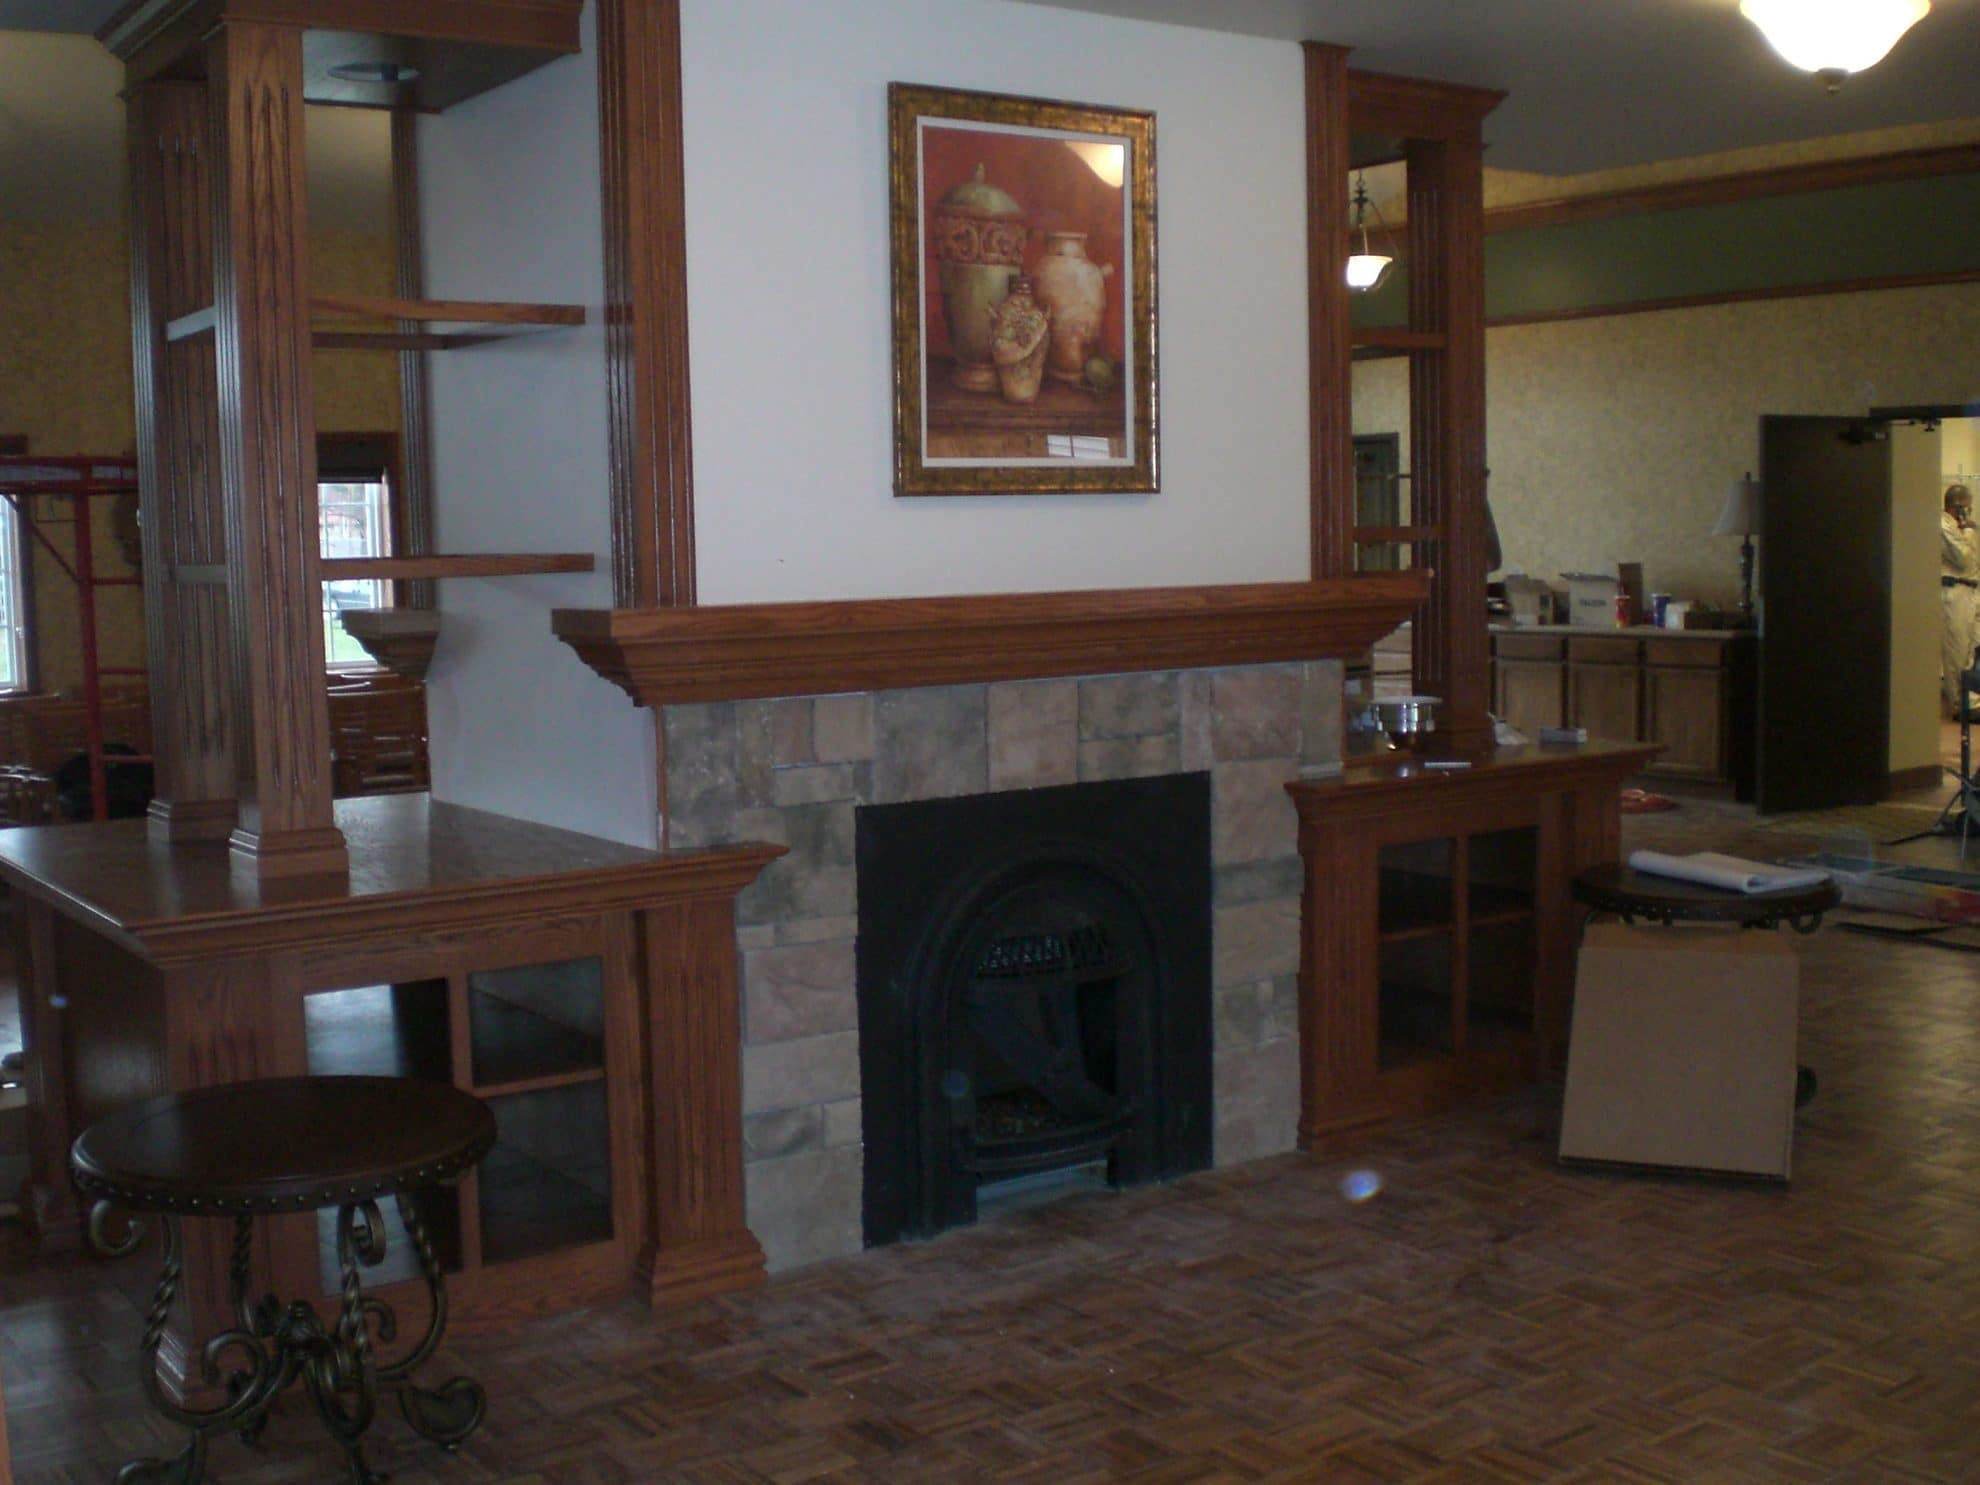 Fireplace and bookcases.